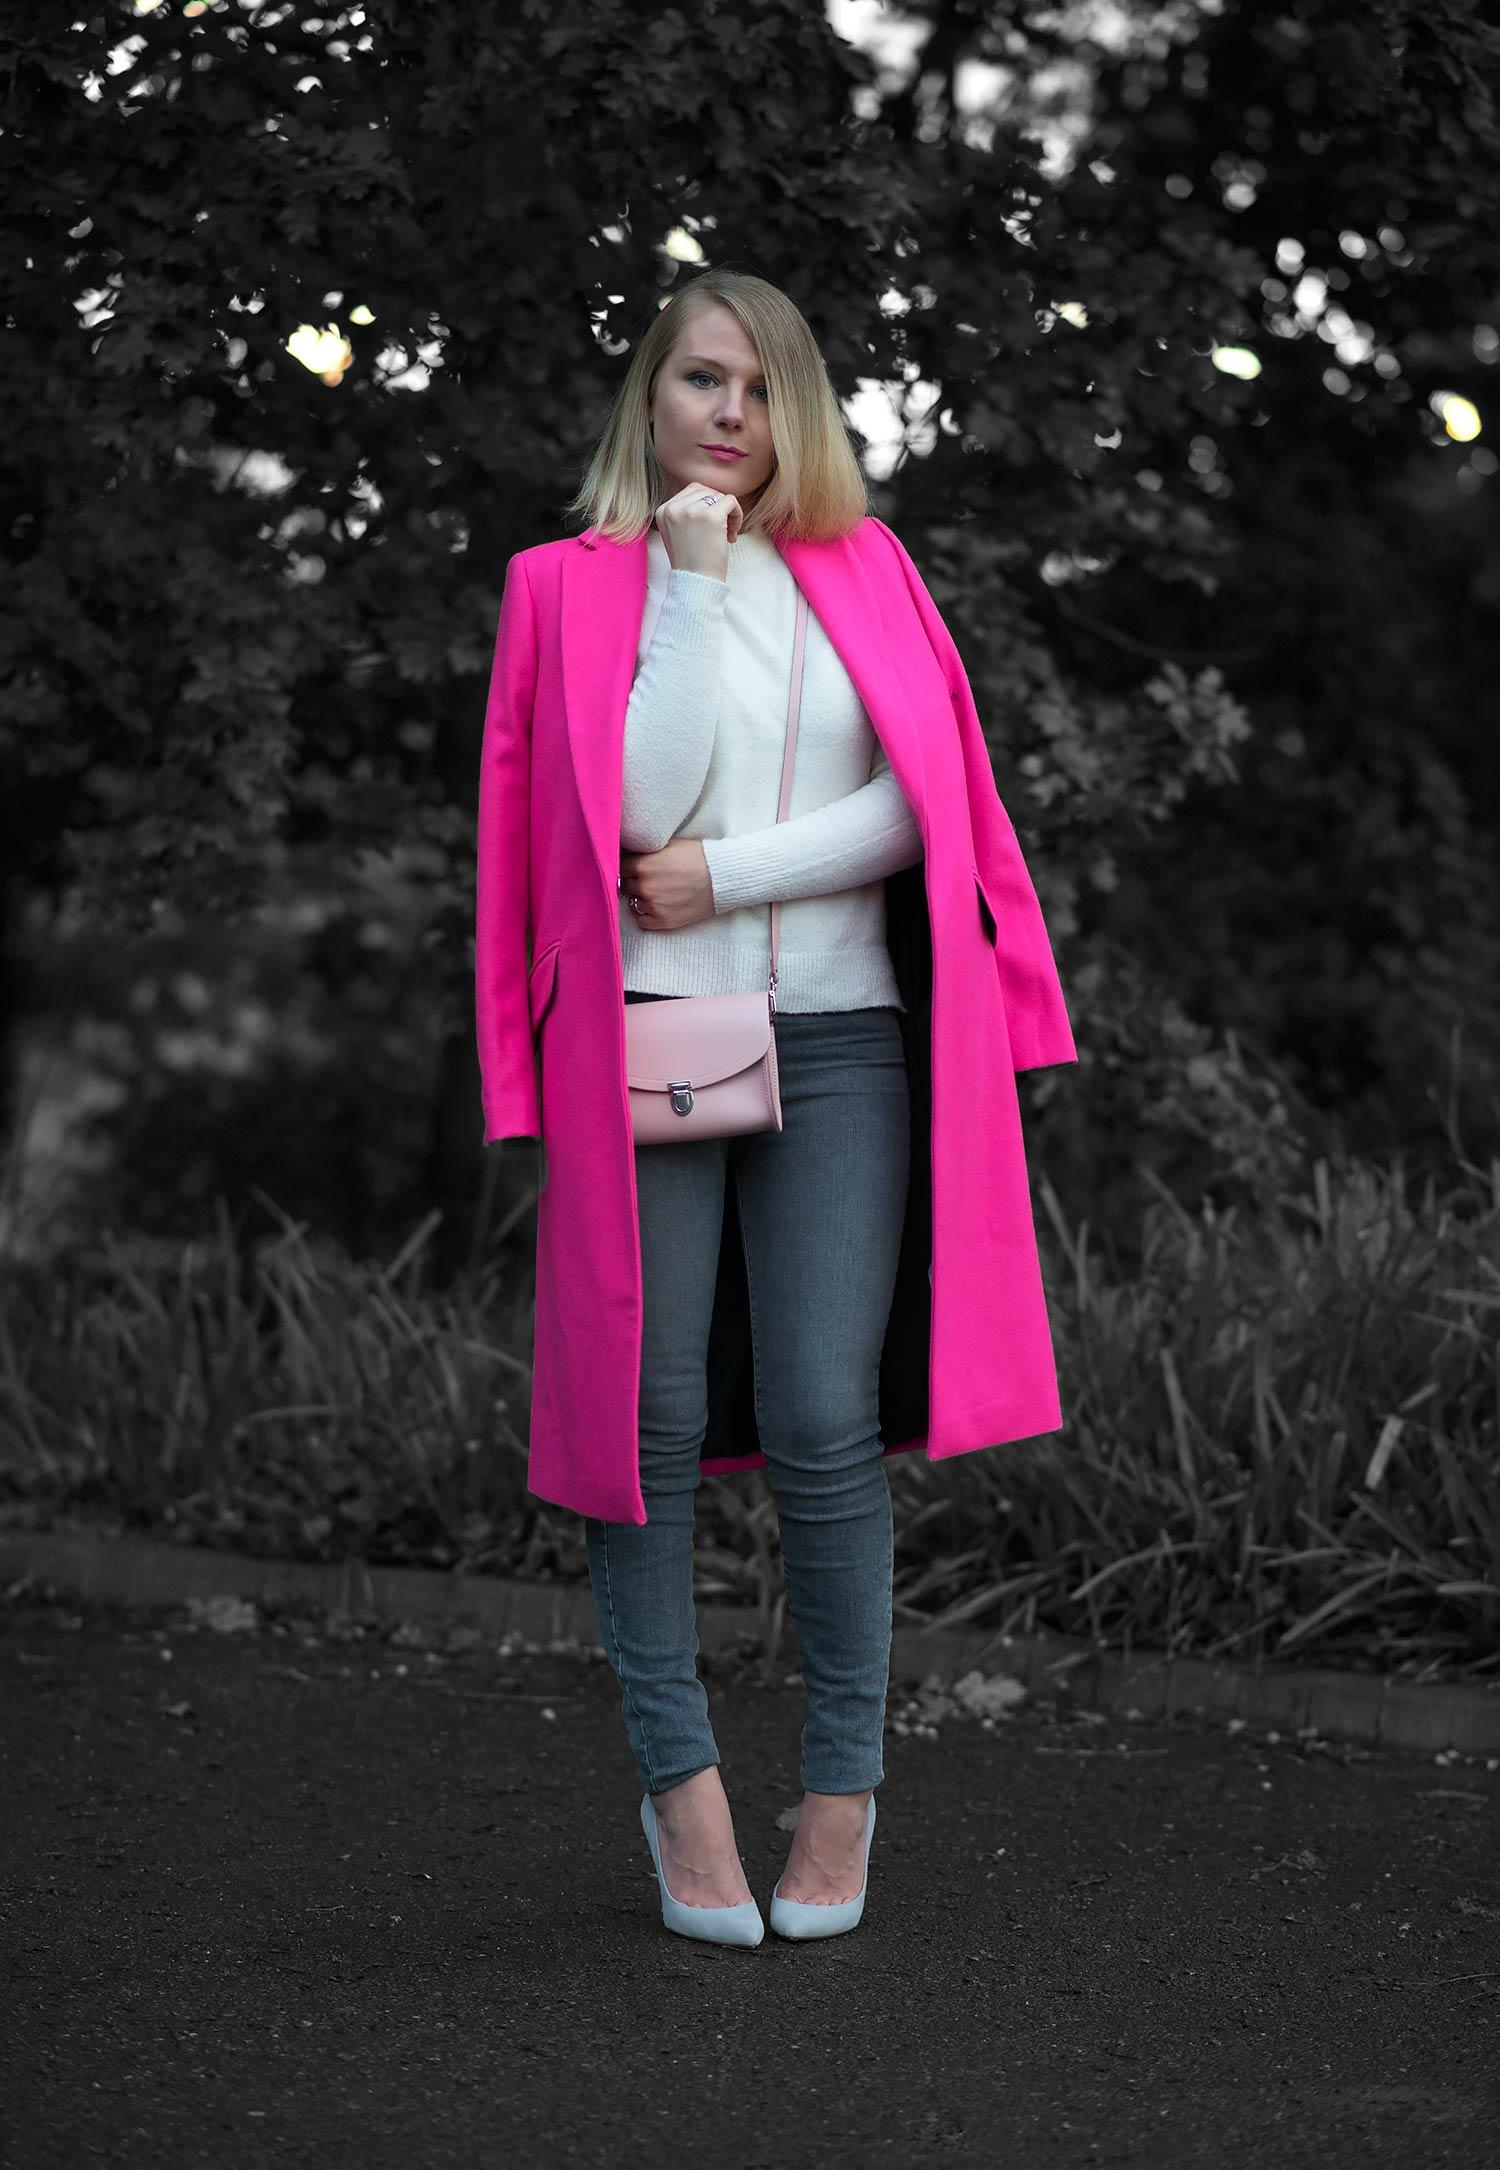 The Fluro Pink Wool Coat | Raindrops of Sapphire